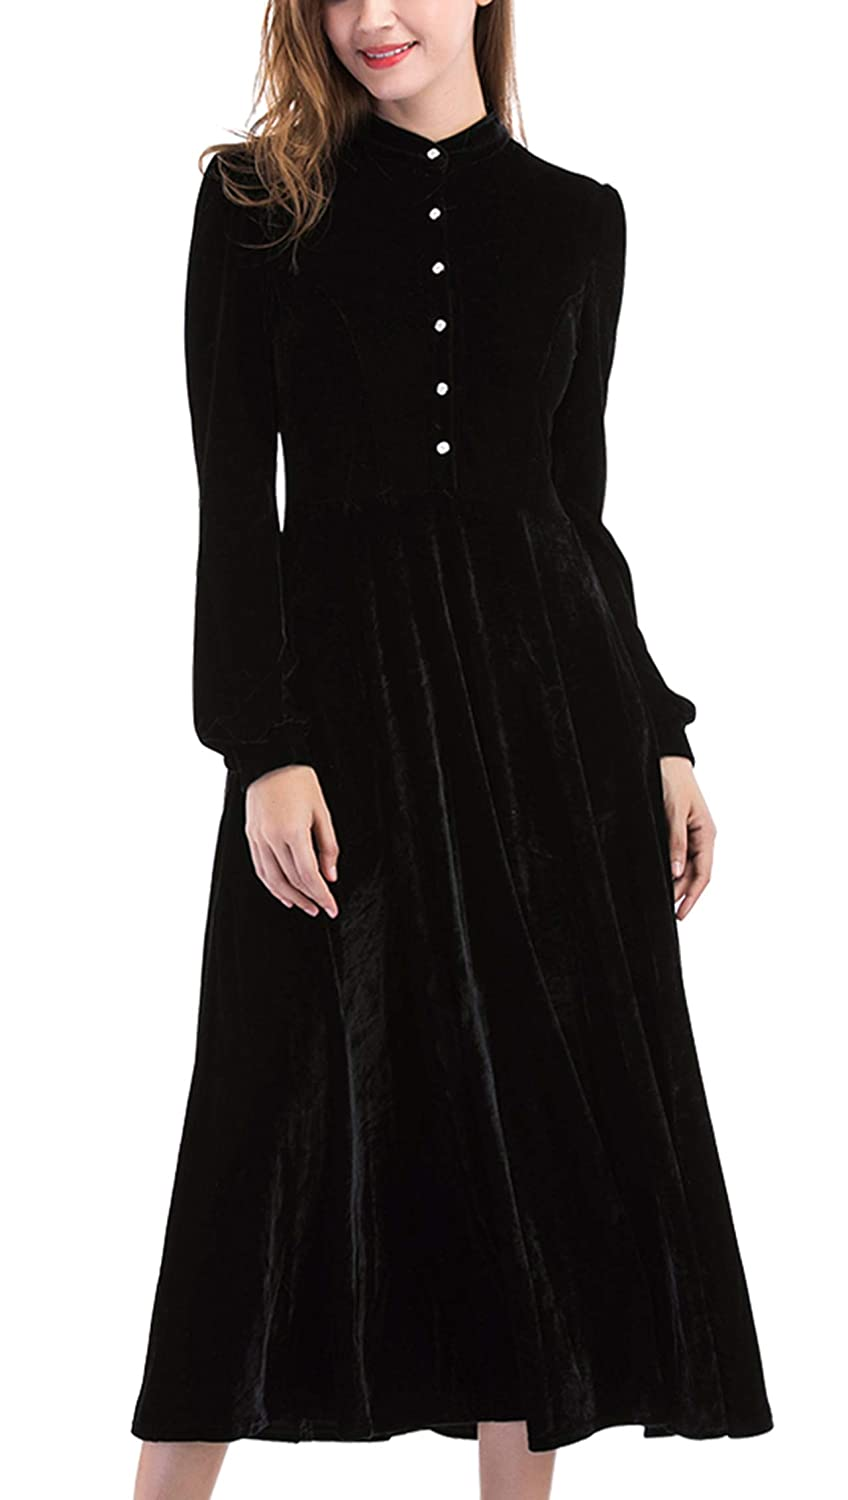 500 Vintage Style Dresses for Sale | Vintage Inspired Dresses Ayliss Women Velvet Maxi Dress Peter Pan Collar Long Sleeve Swing Dress $29.99 AT vintagedancer.com